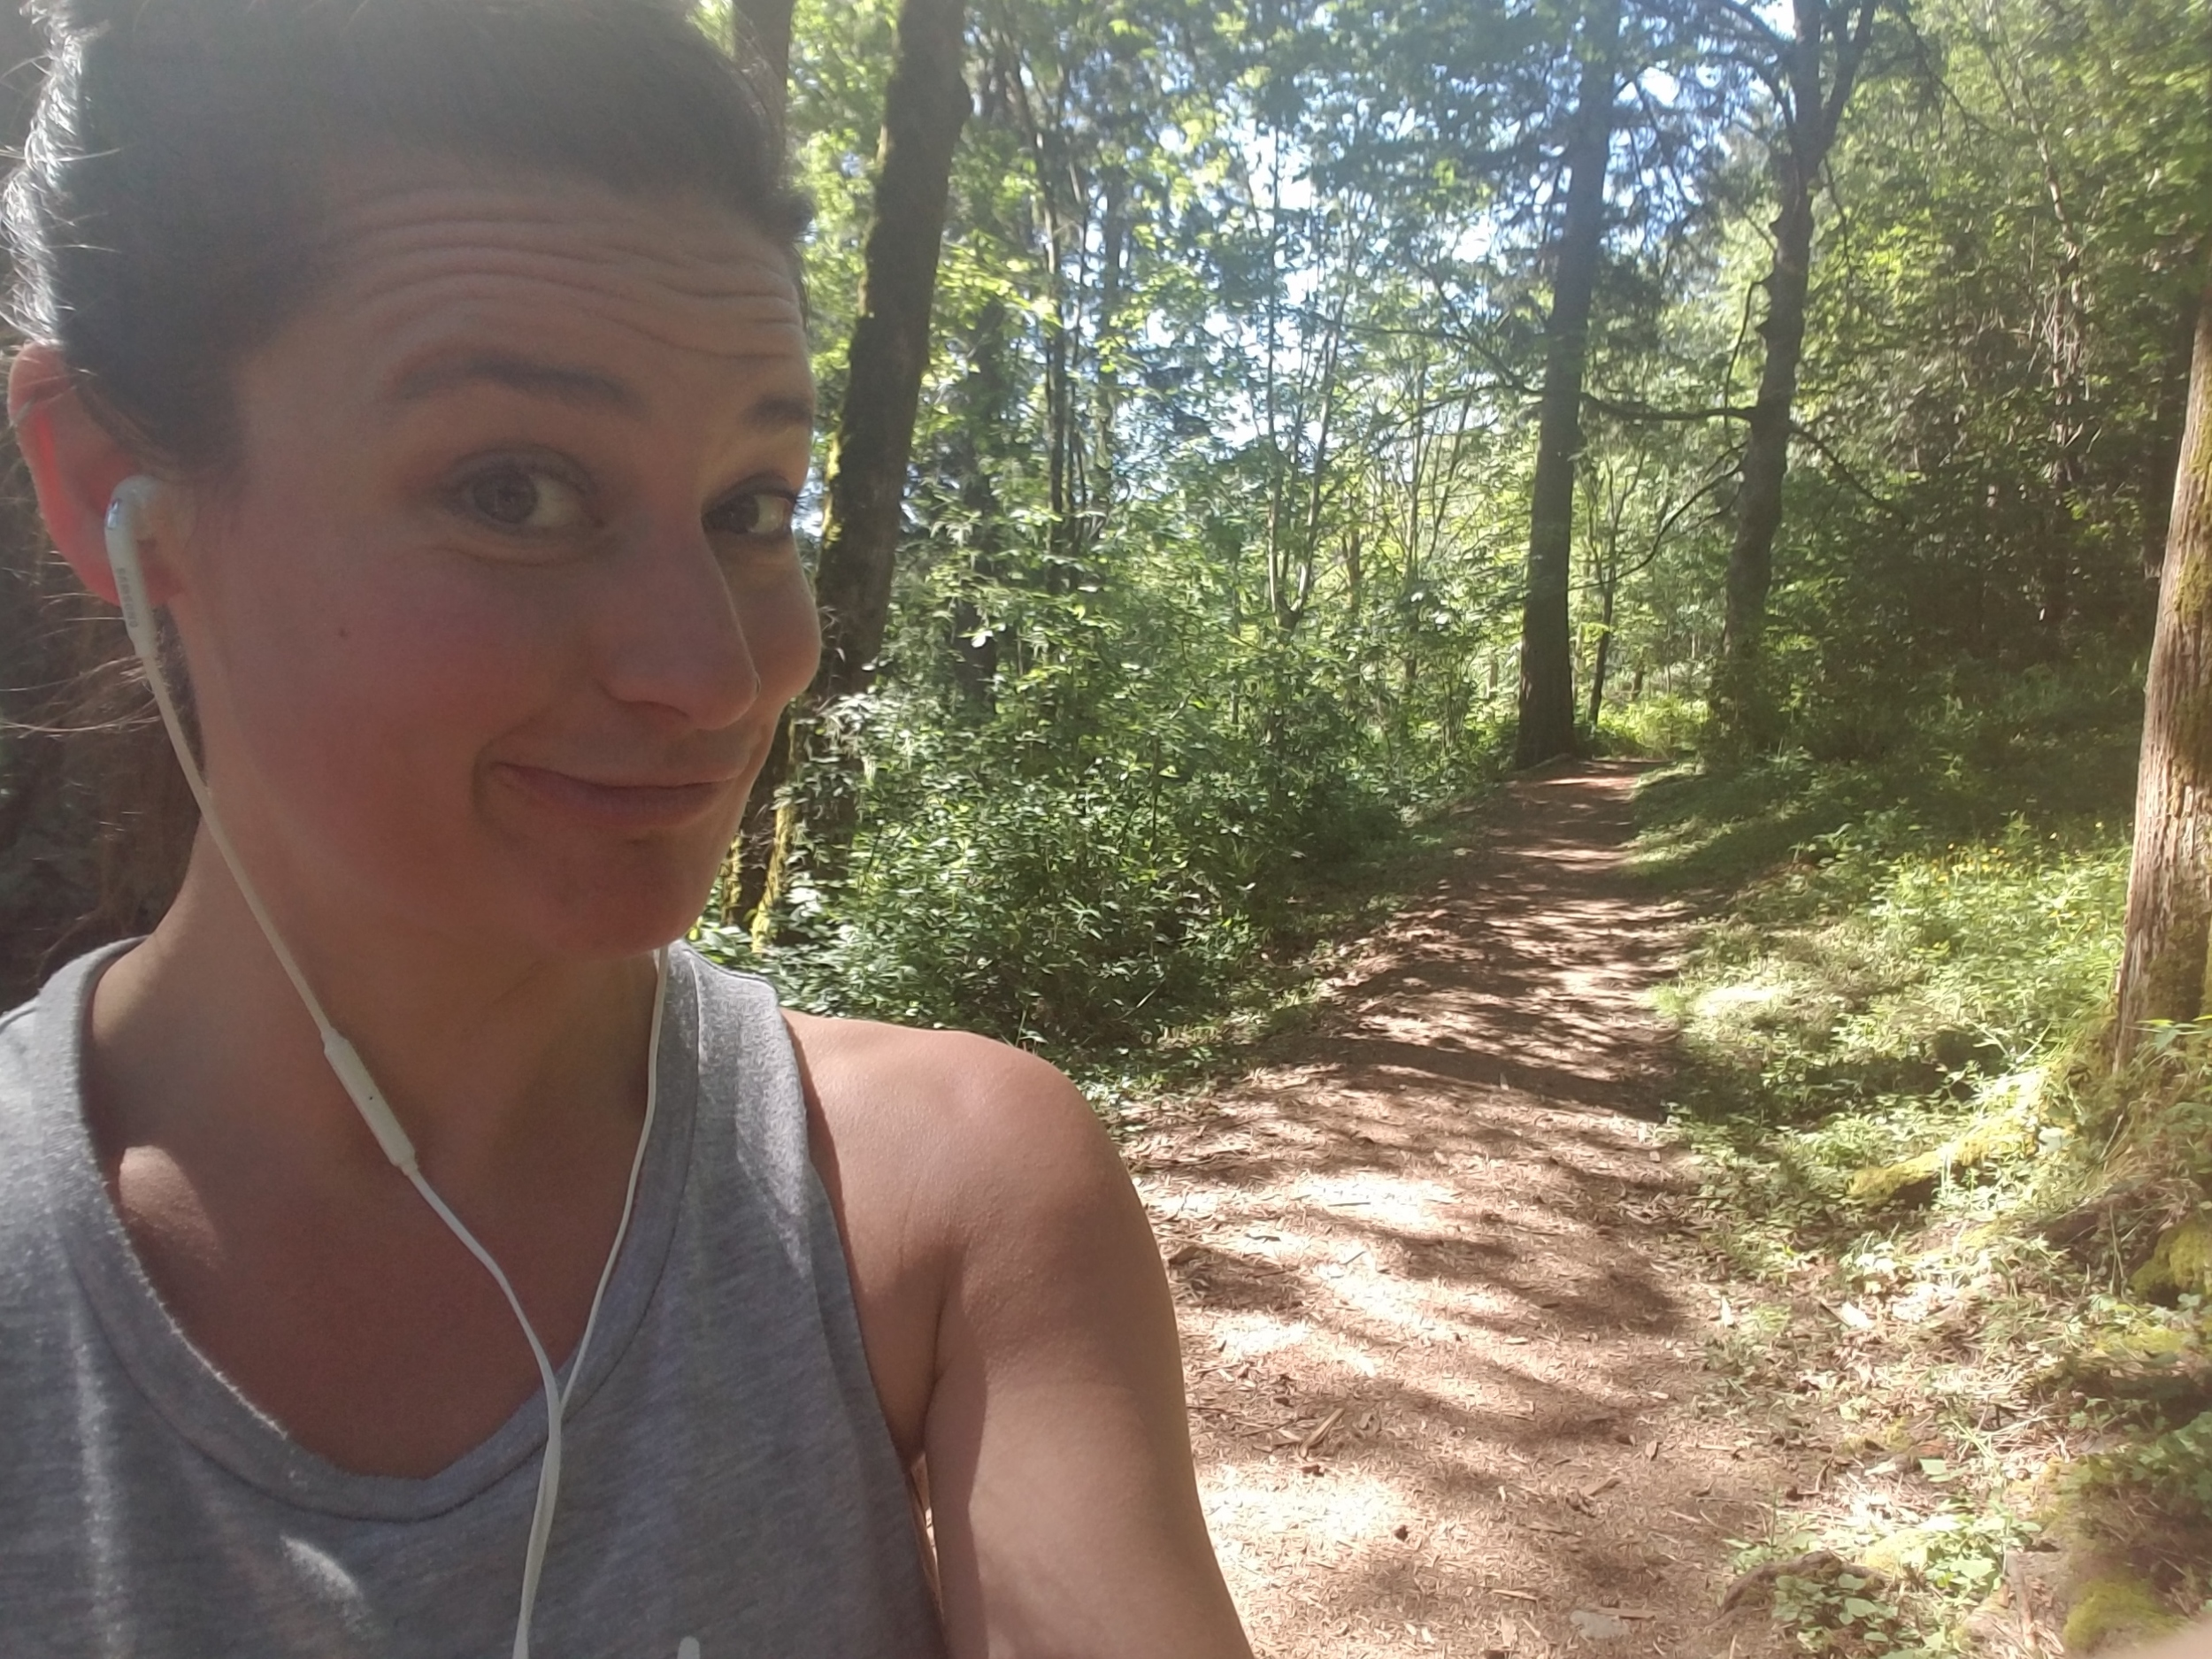 Running in the woods. We got this.